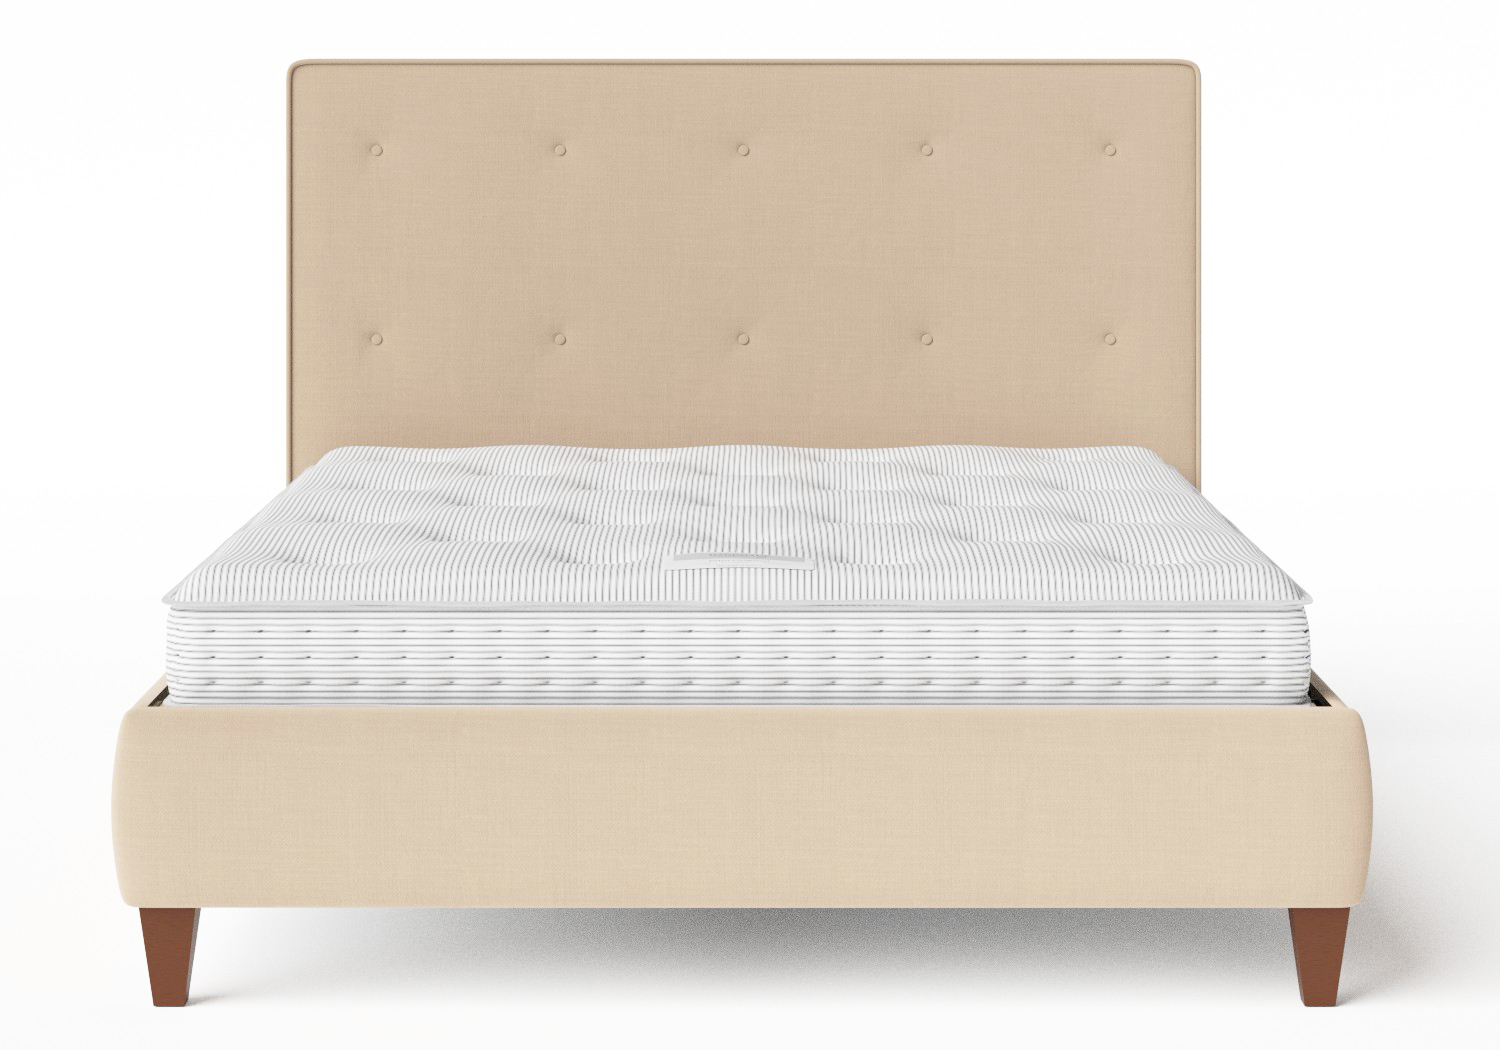 Yushan Upholstered Bed in Natural fabric with buttoning shown with Juno 1 mattress